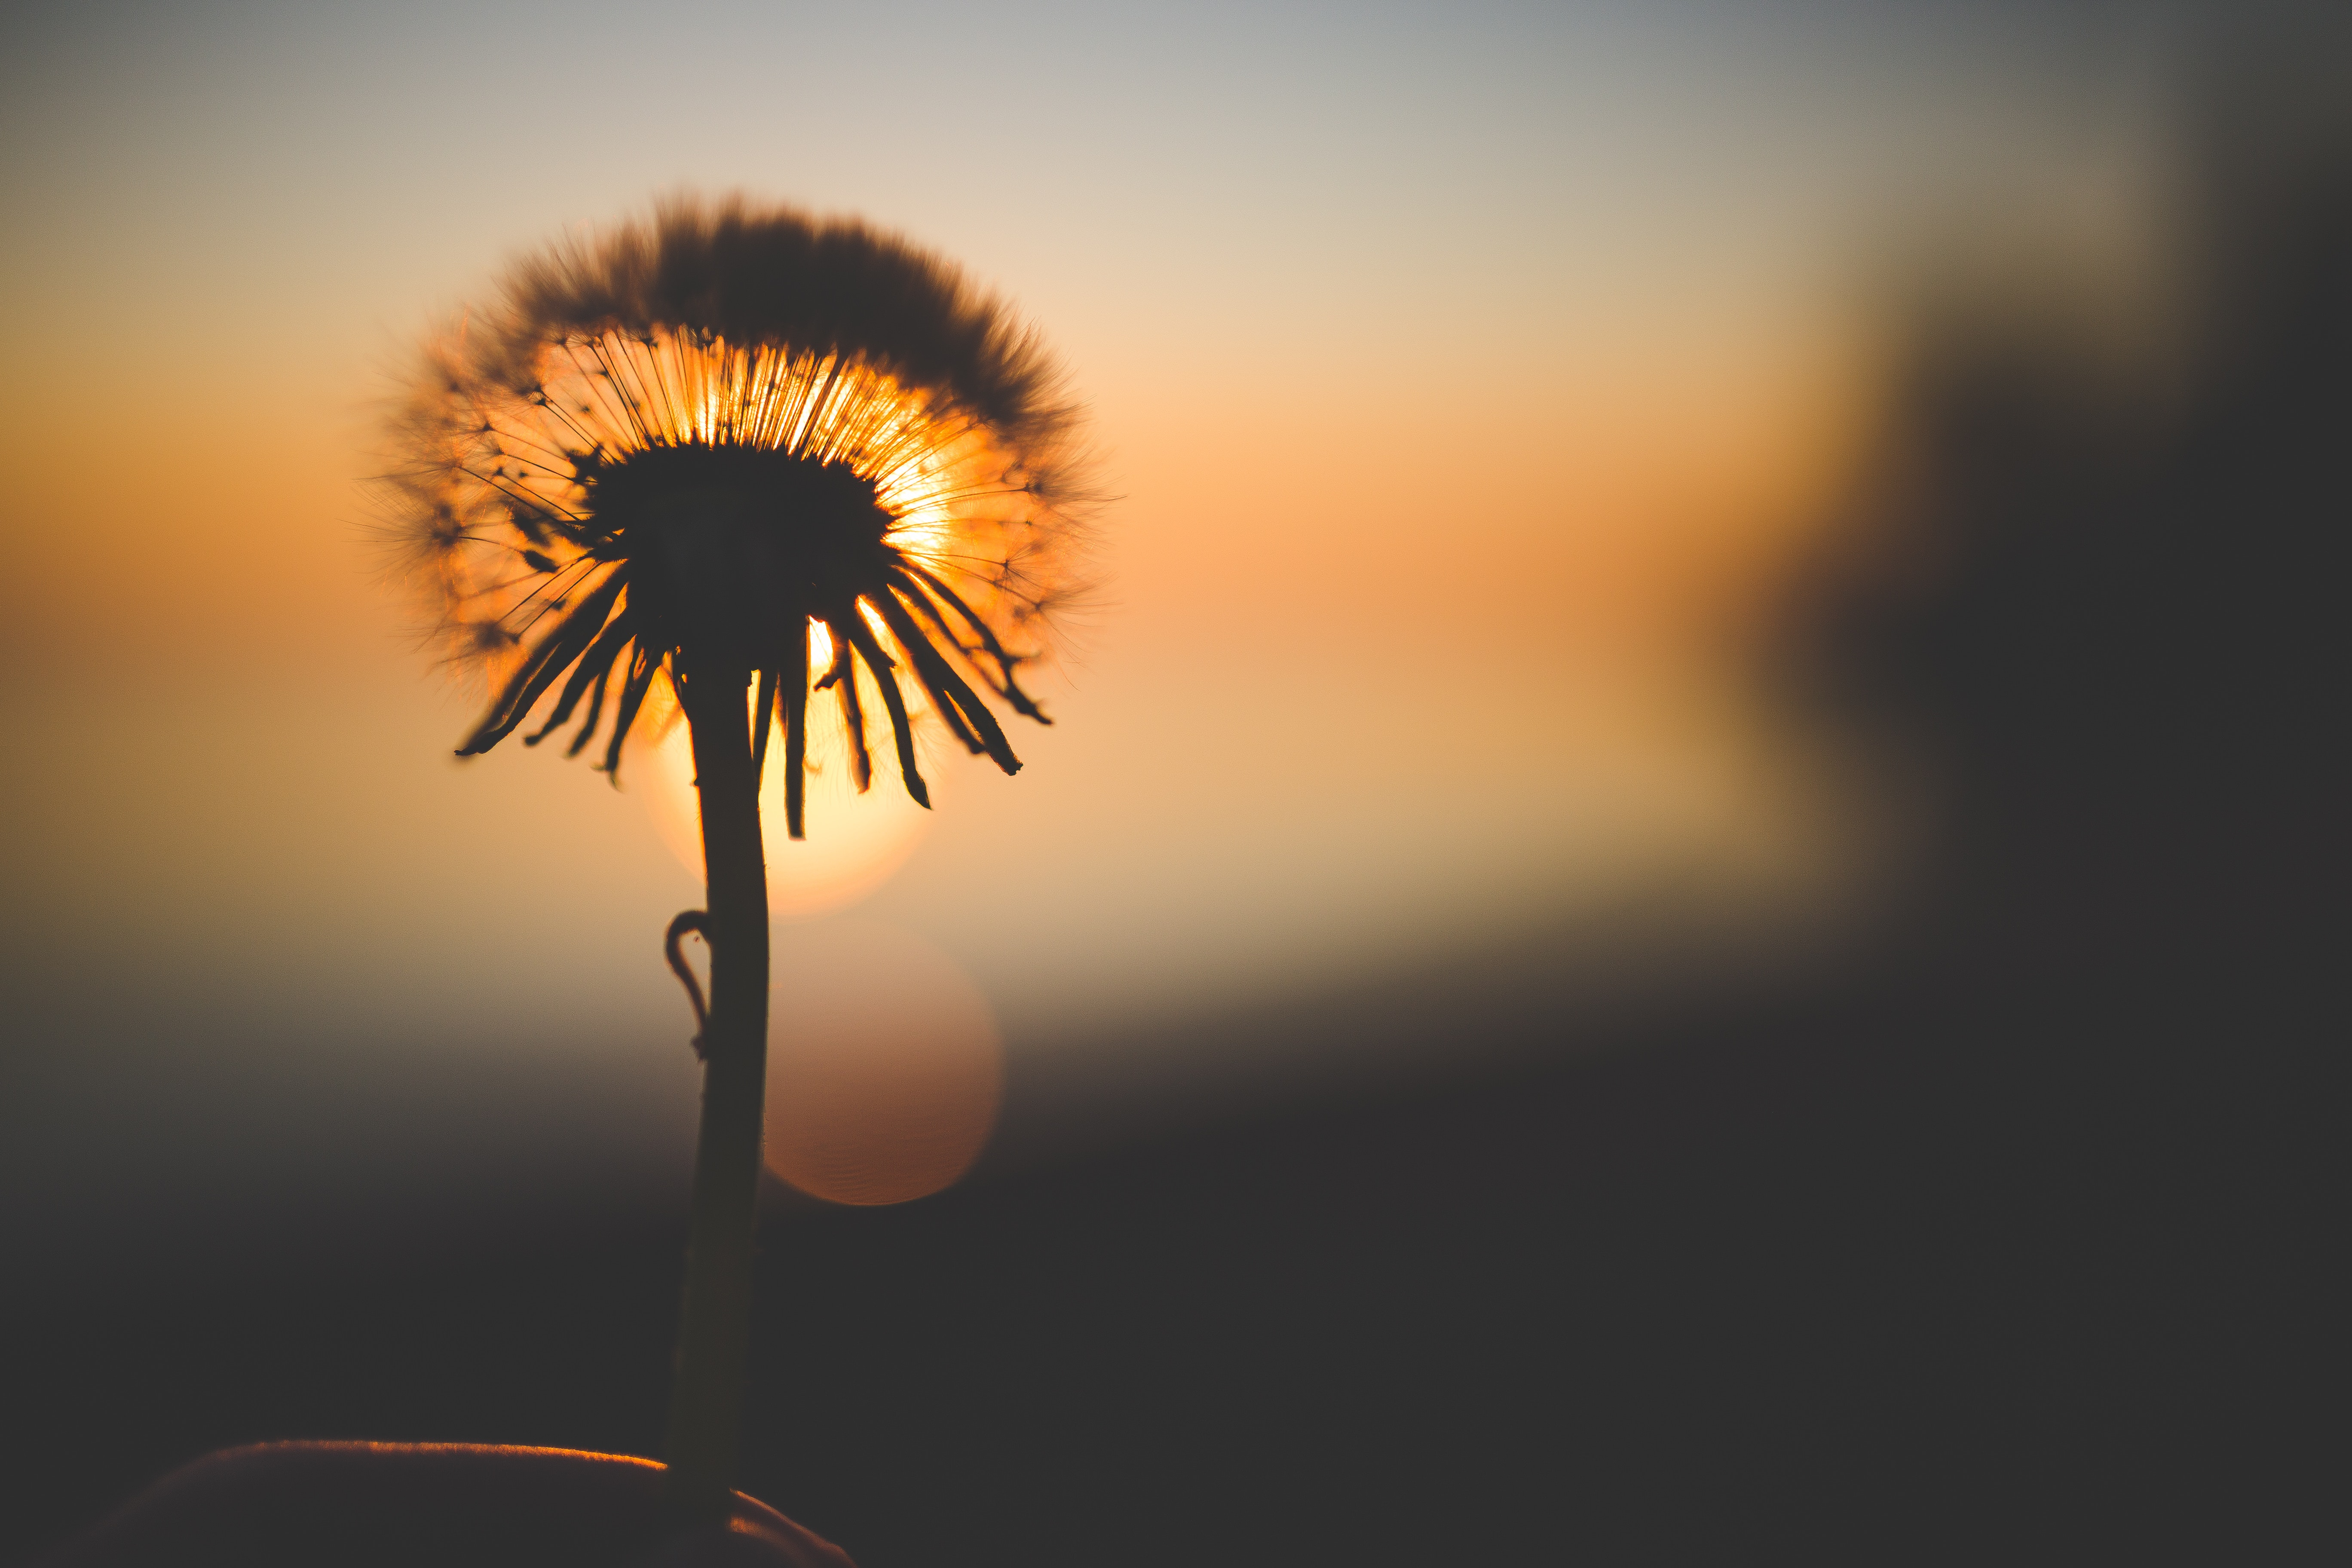 Silhouette of dandelion behind sun photo